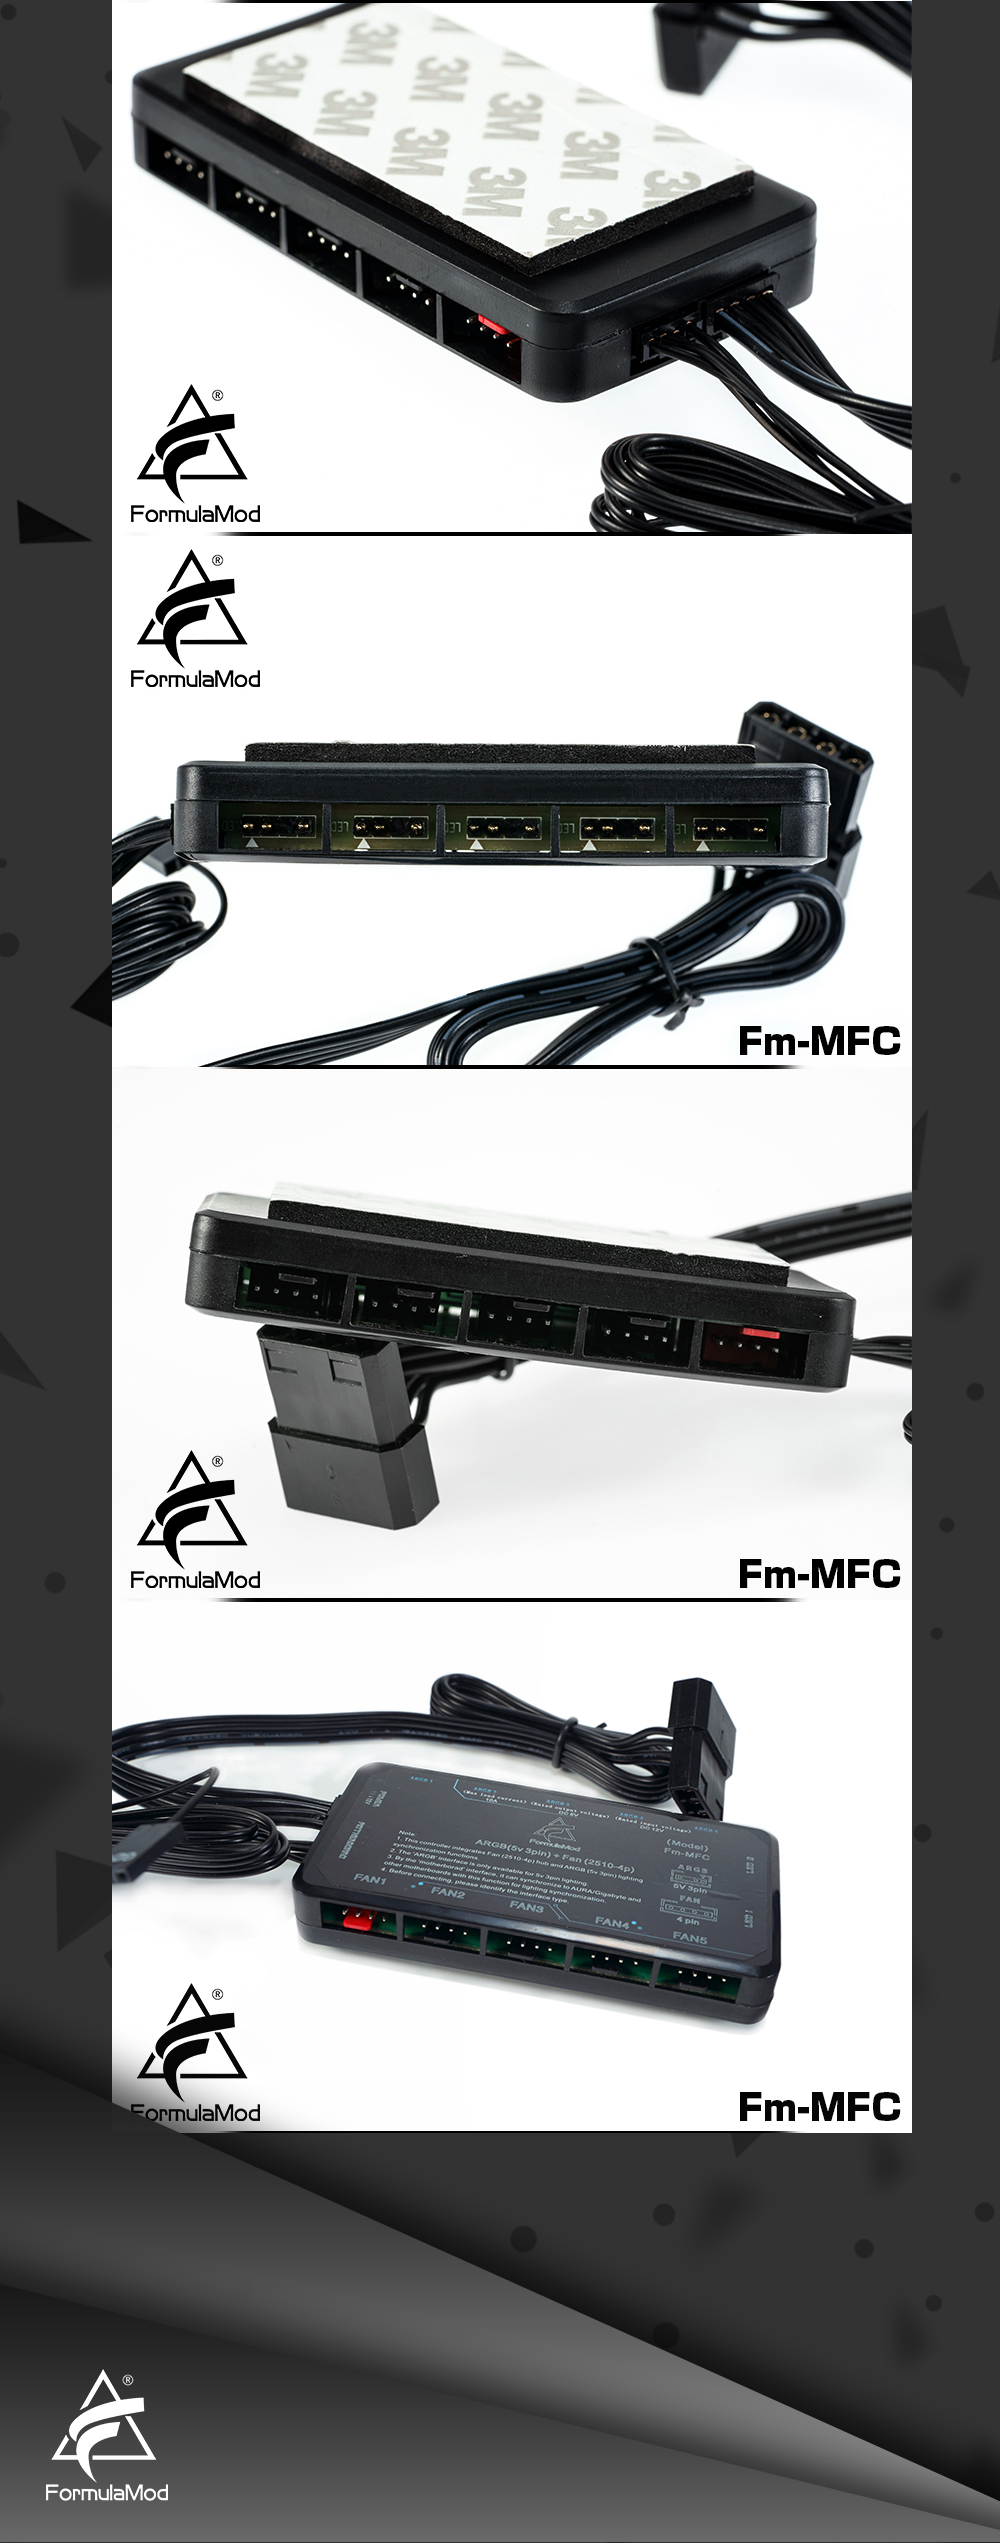 FormulaMod Fm-MFC Sync Controller For ARGB(5v 3pin) Lighting & Fan(2510-4pin) Power/PWM, Hub For Connecting/Sync To Motherboard